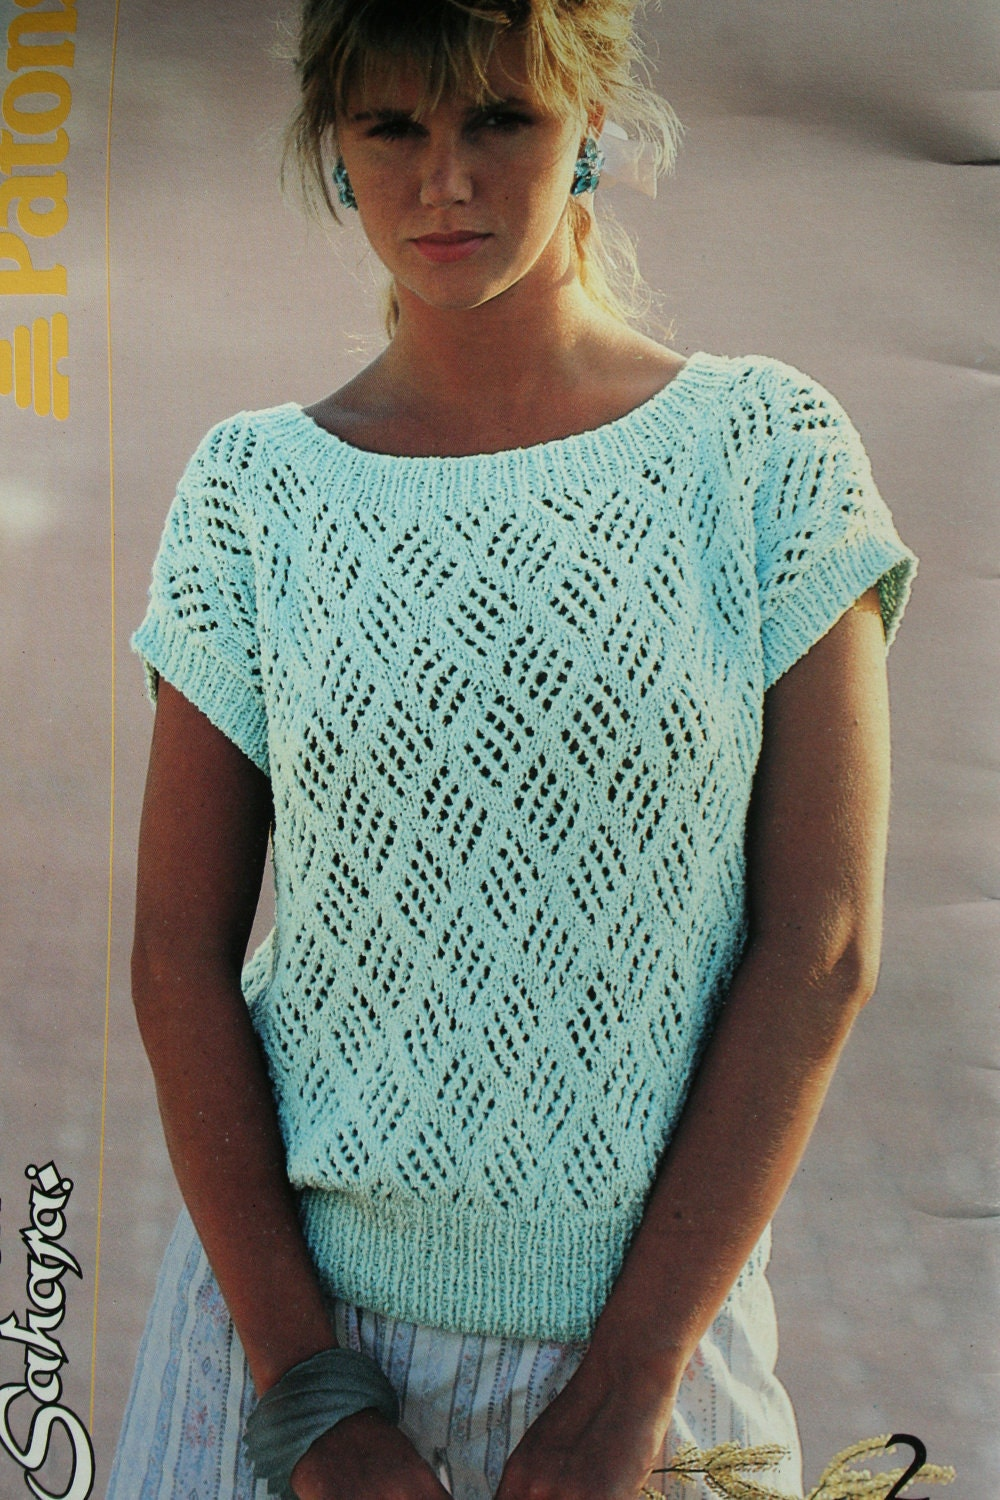 Knitting Designs Sweaters : Sweater knitting patterns summer women vintage cotton by